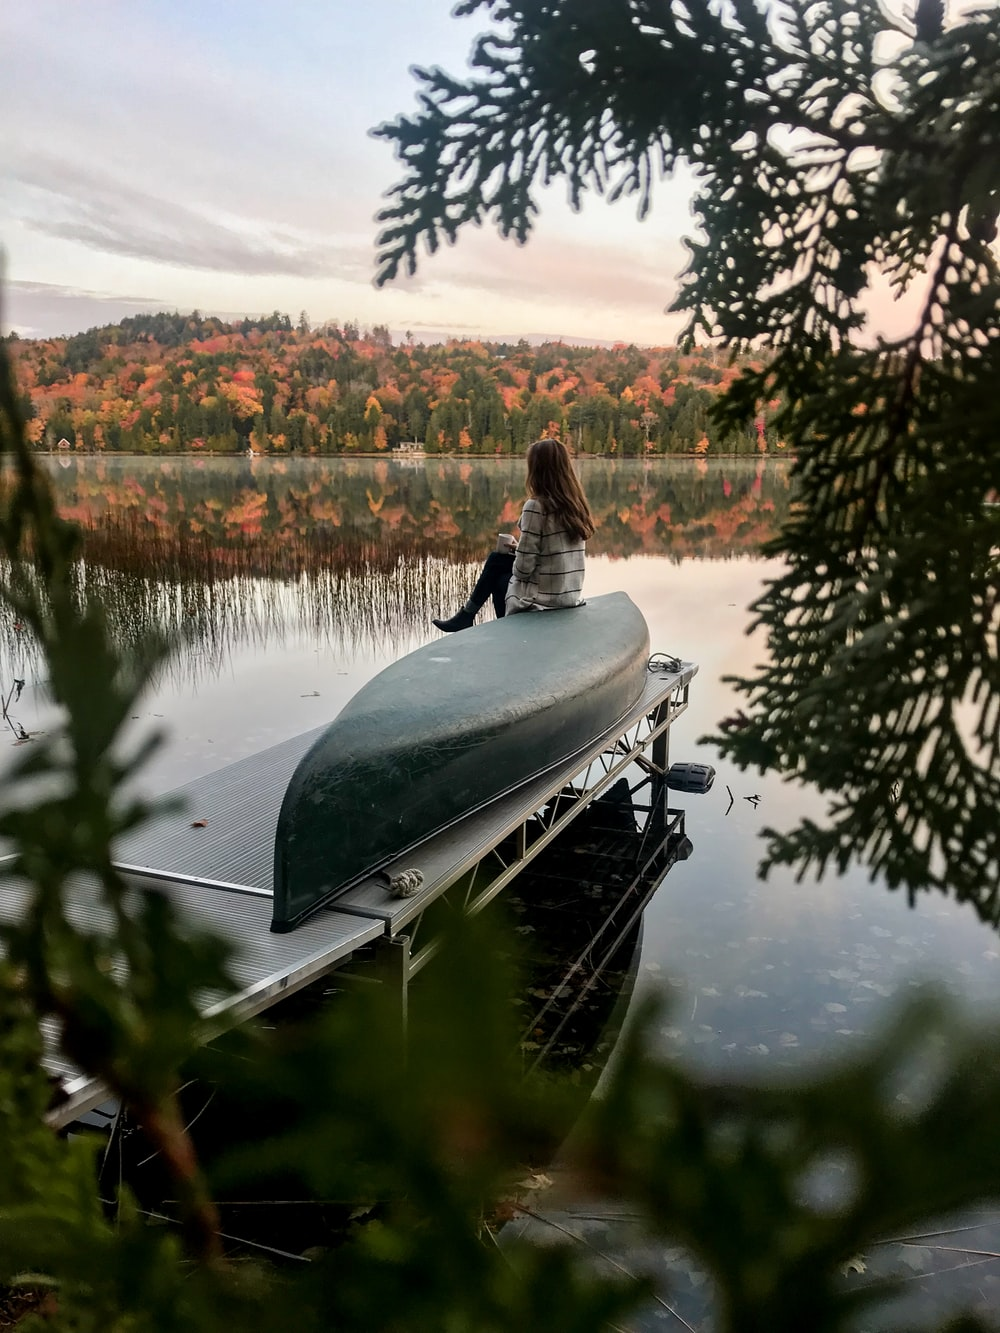 woman in sweater sits on green boat on dock